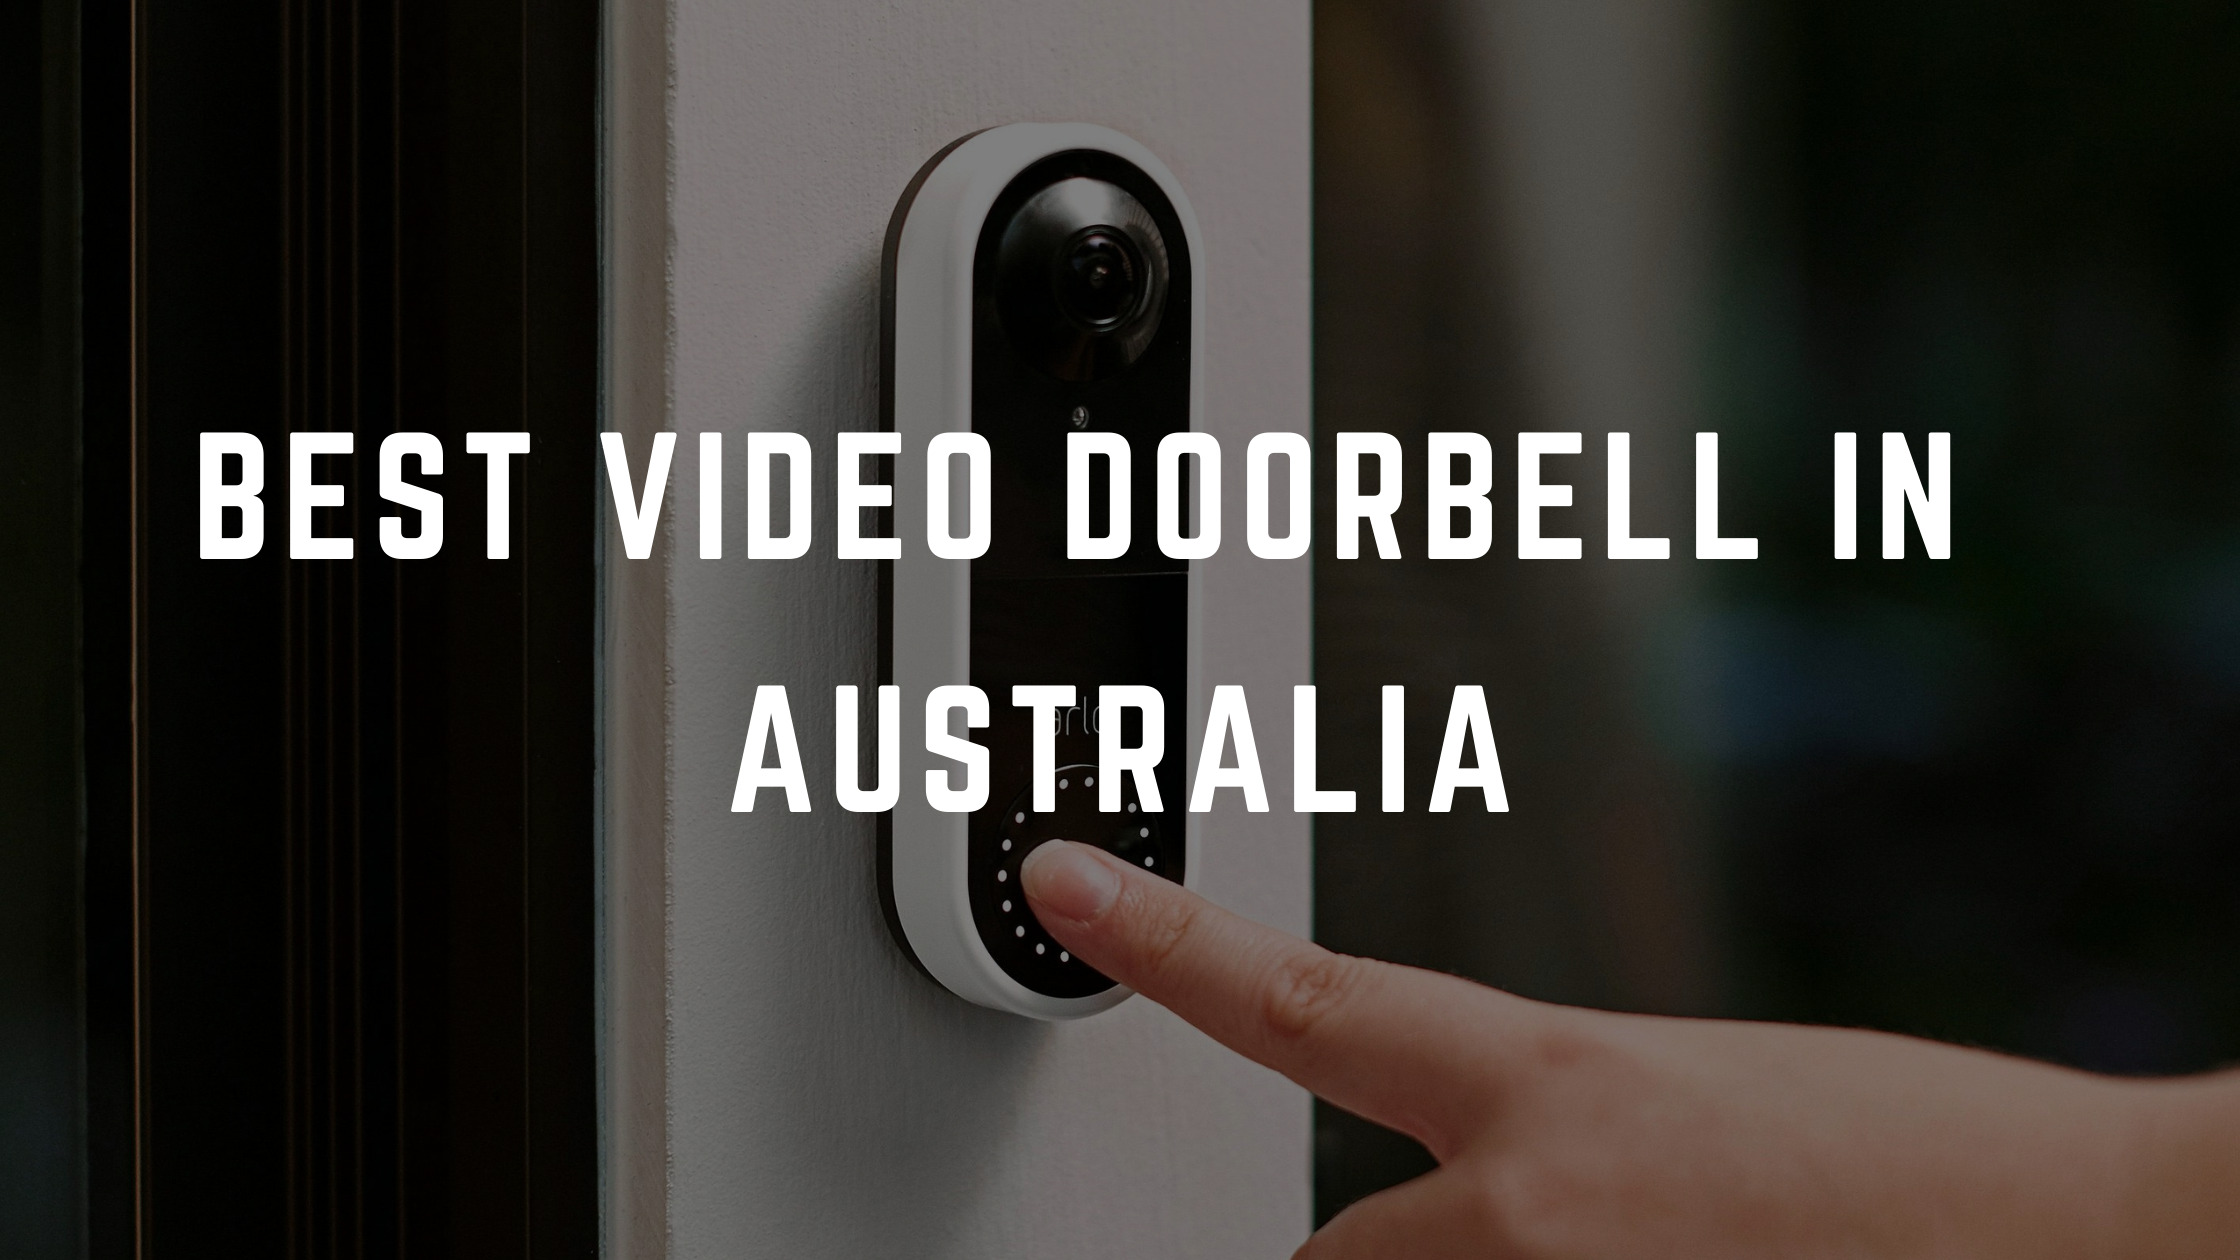 best video doorbell australia